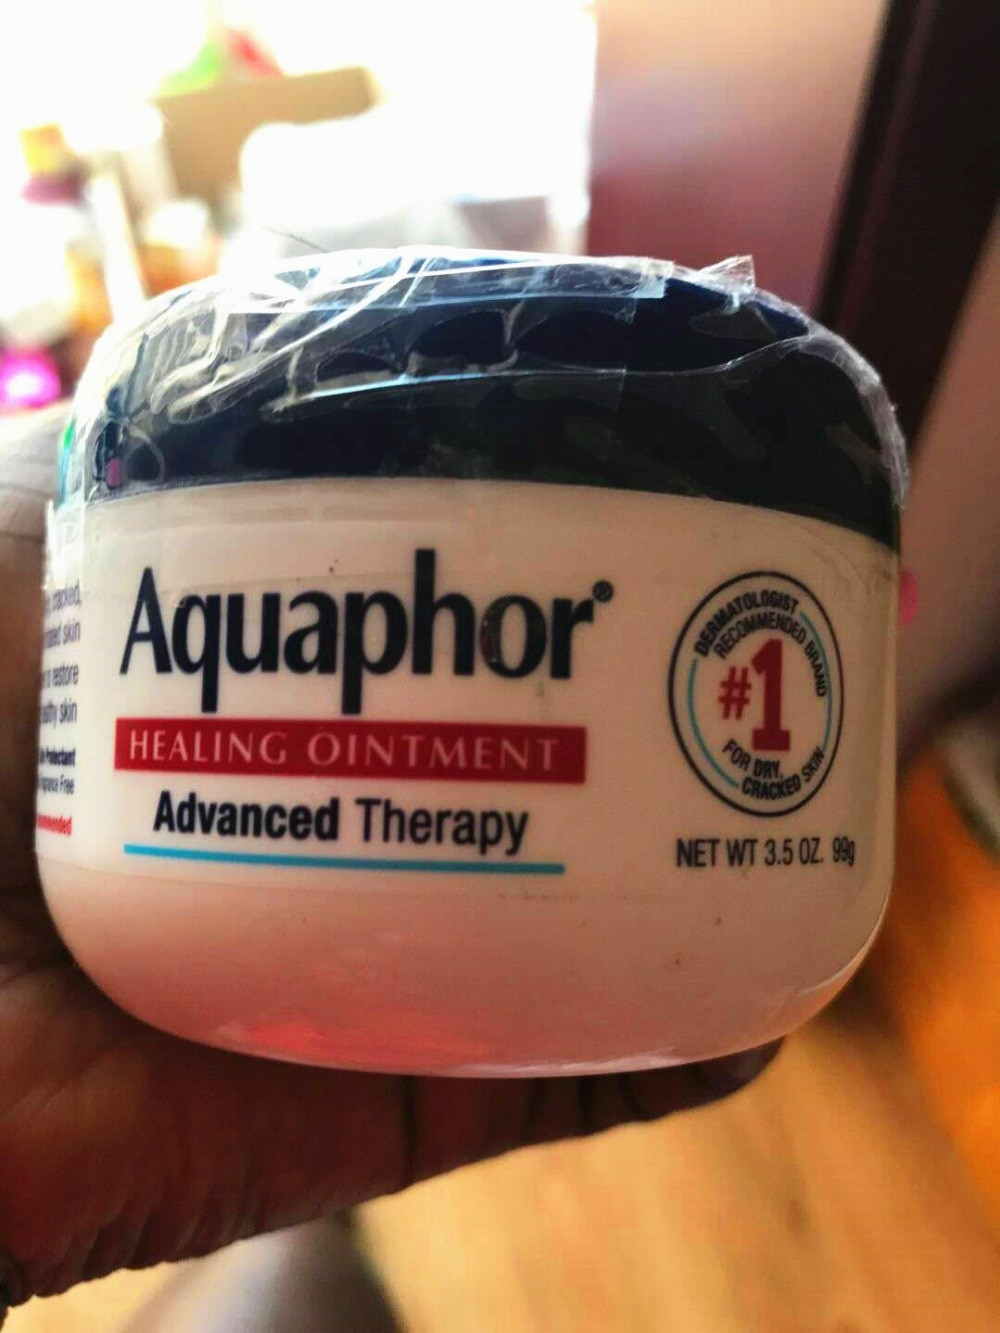 Aquaphor Advanced Therapy Healing Ointment Skin Protectant / 3.5oz